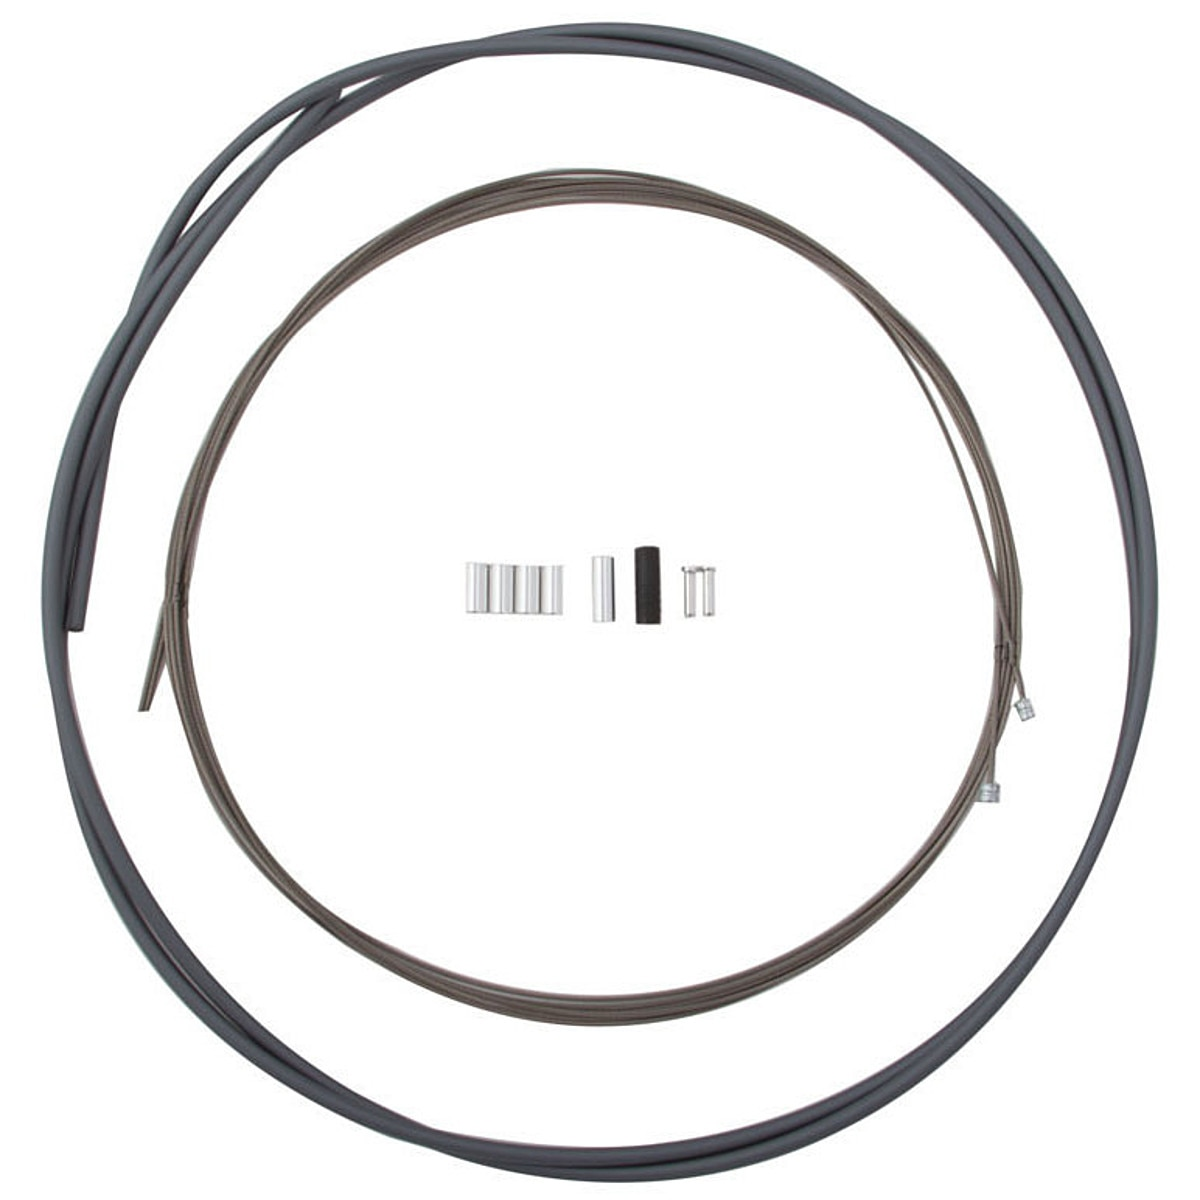 Shimano Ptfe Shift Cable And Housing Grey One Size